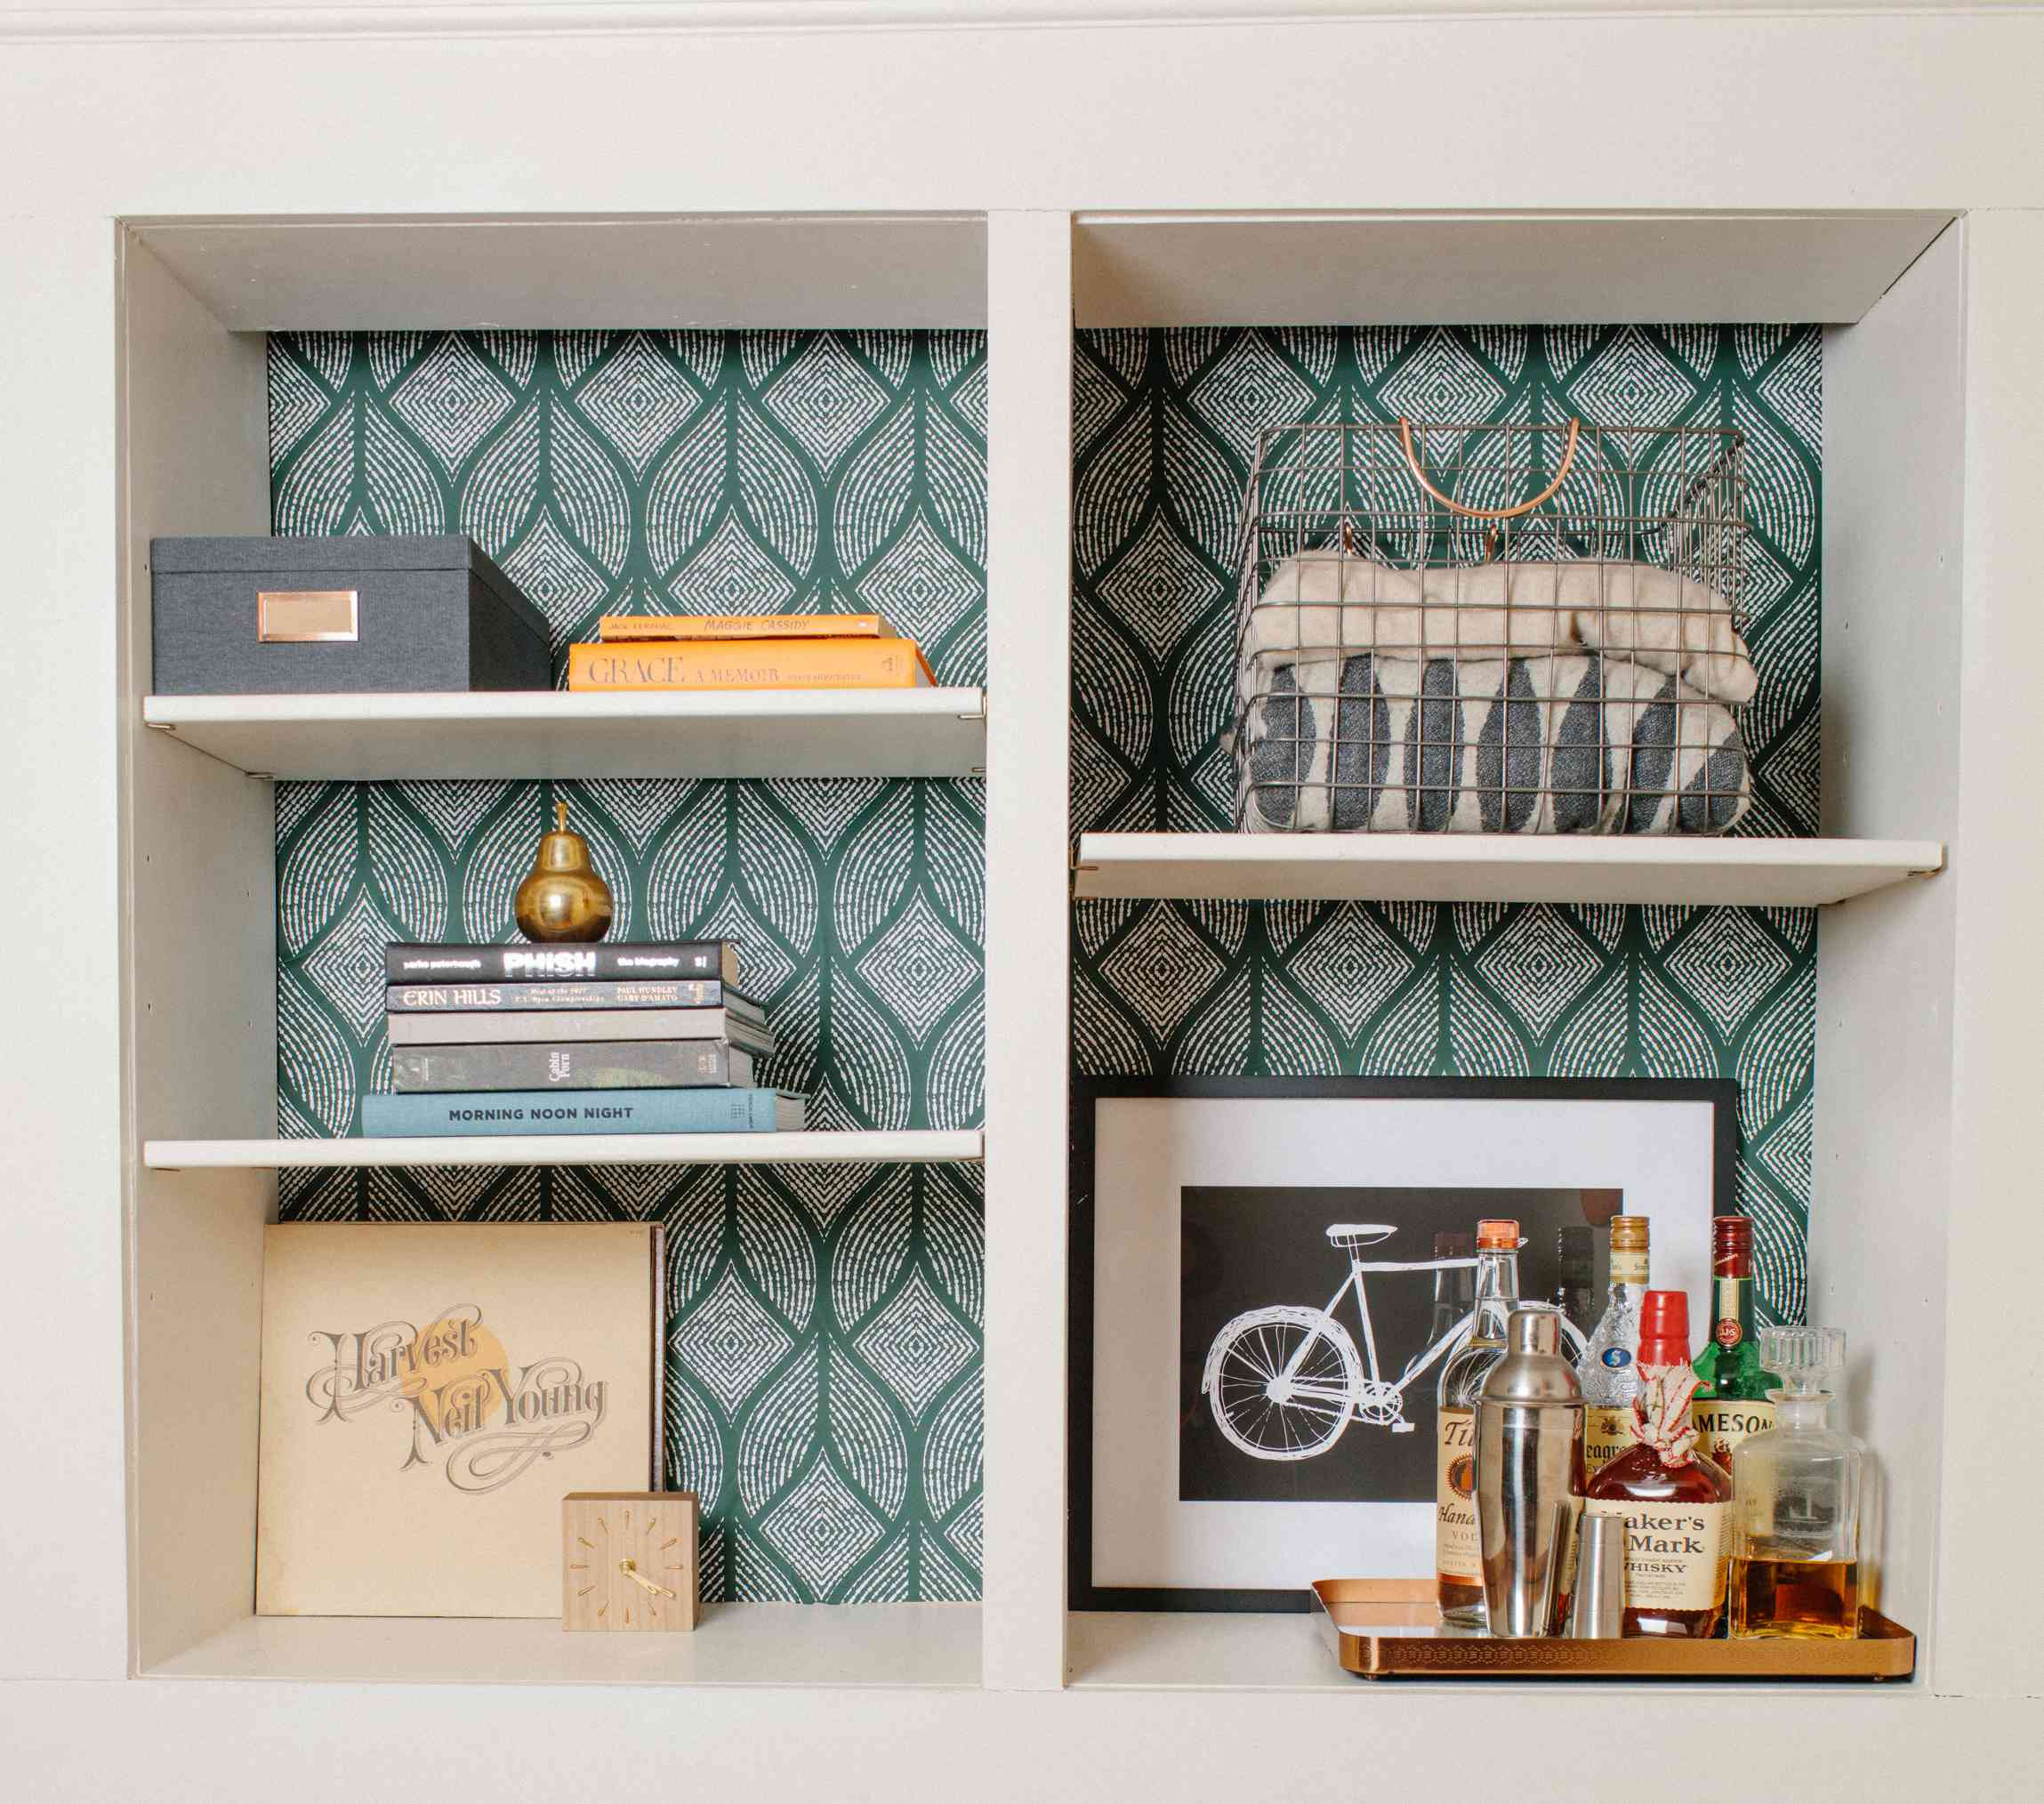 Wallpapered built-in with decorative objects.